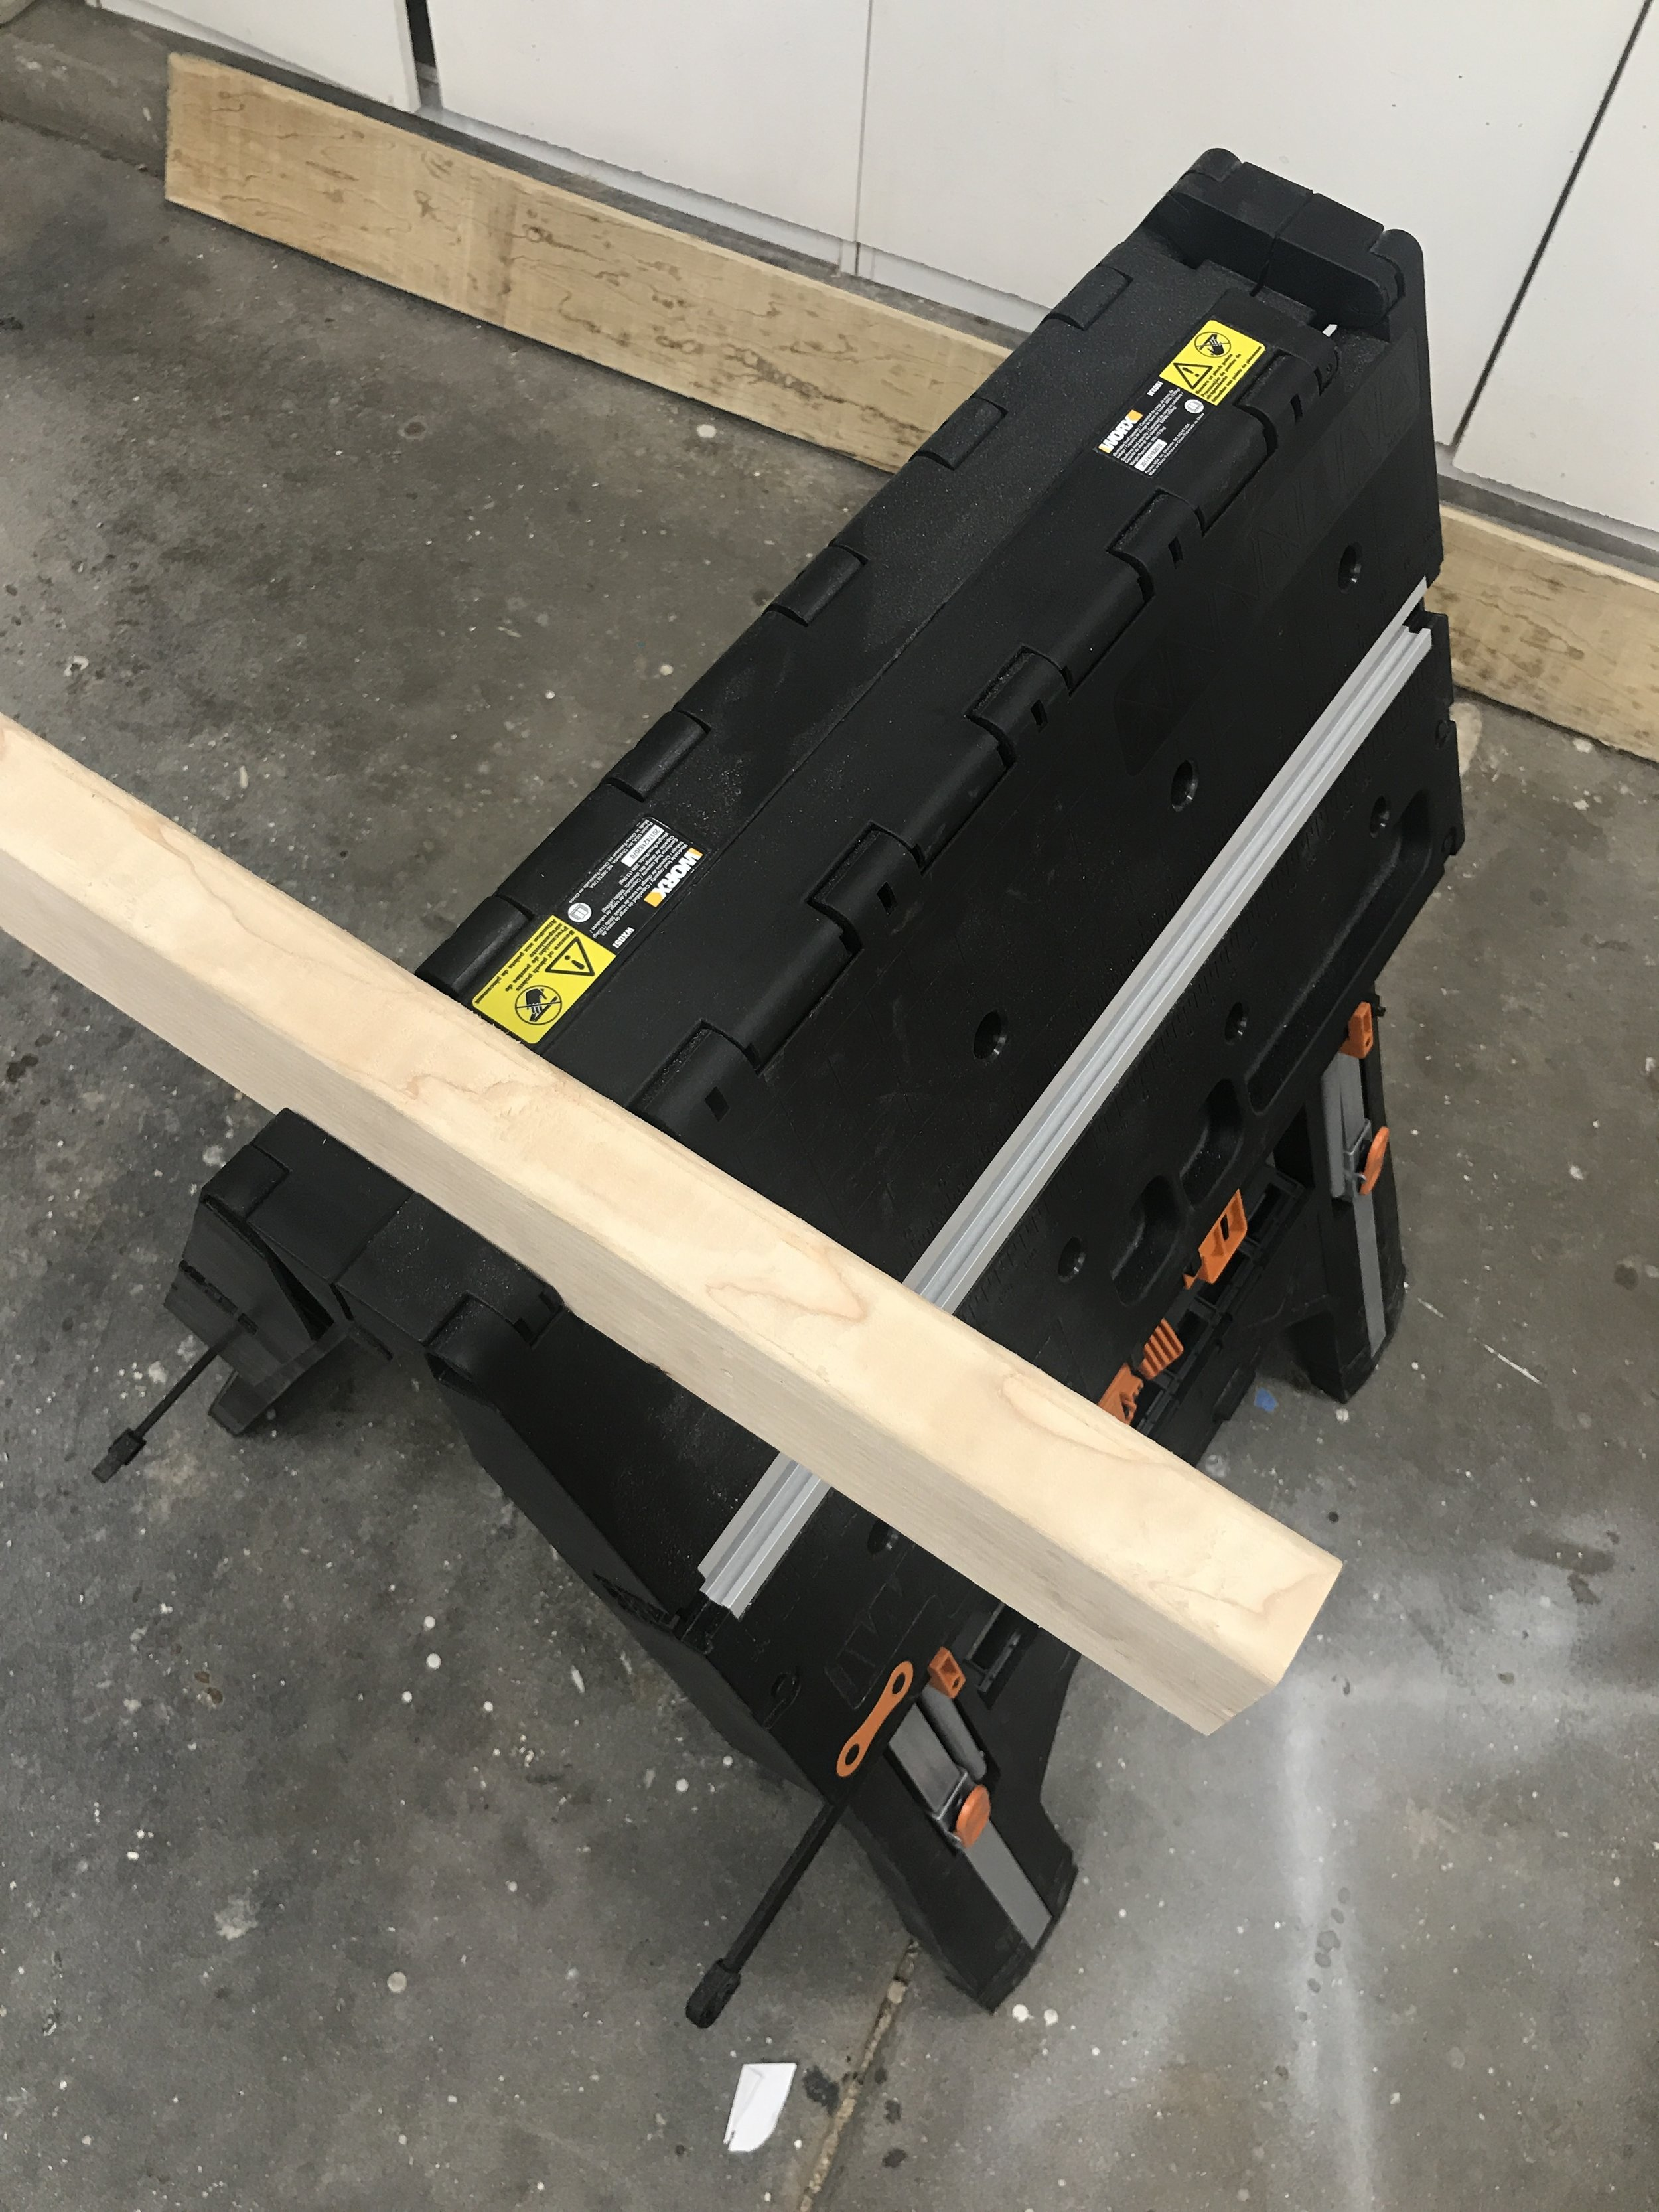 A 2x4 fits perfectly into the top when the support wings/flaps are down. Another great way to join to of The Pegusus' to create an even larger work surface.